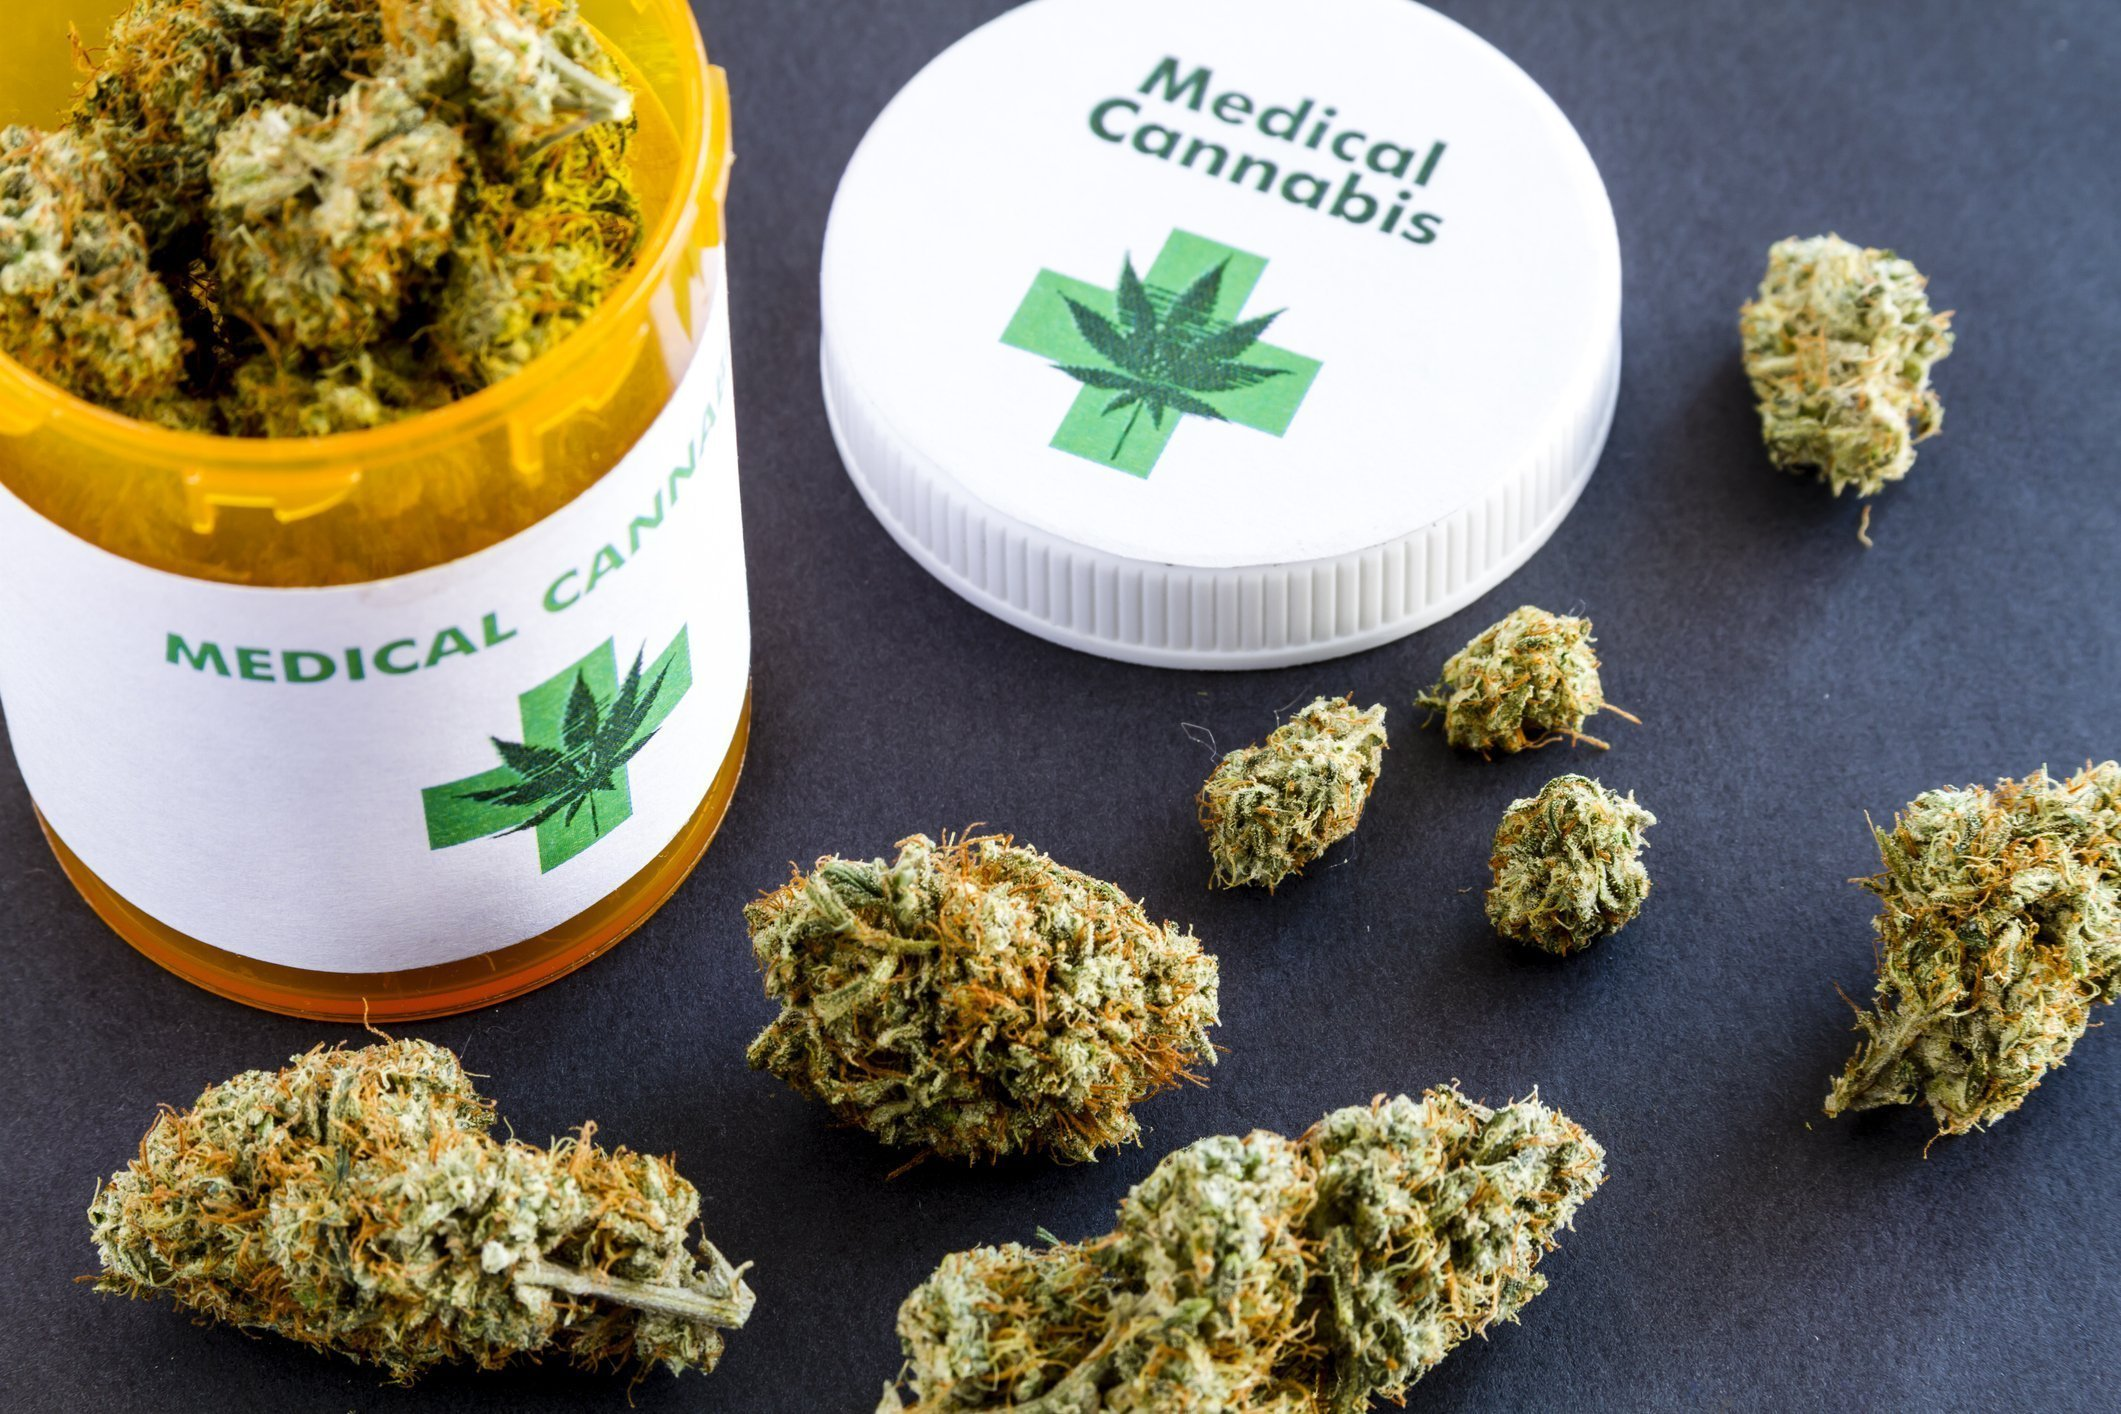 How Does Medical Marijuana Work?